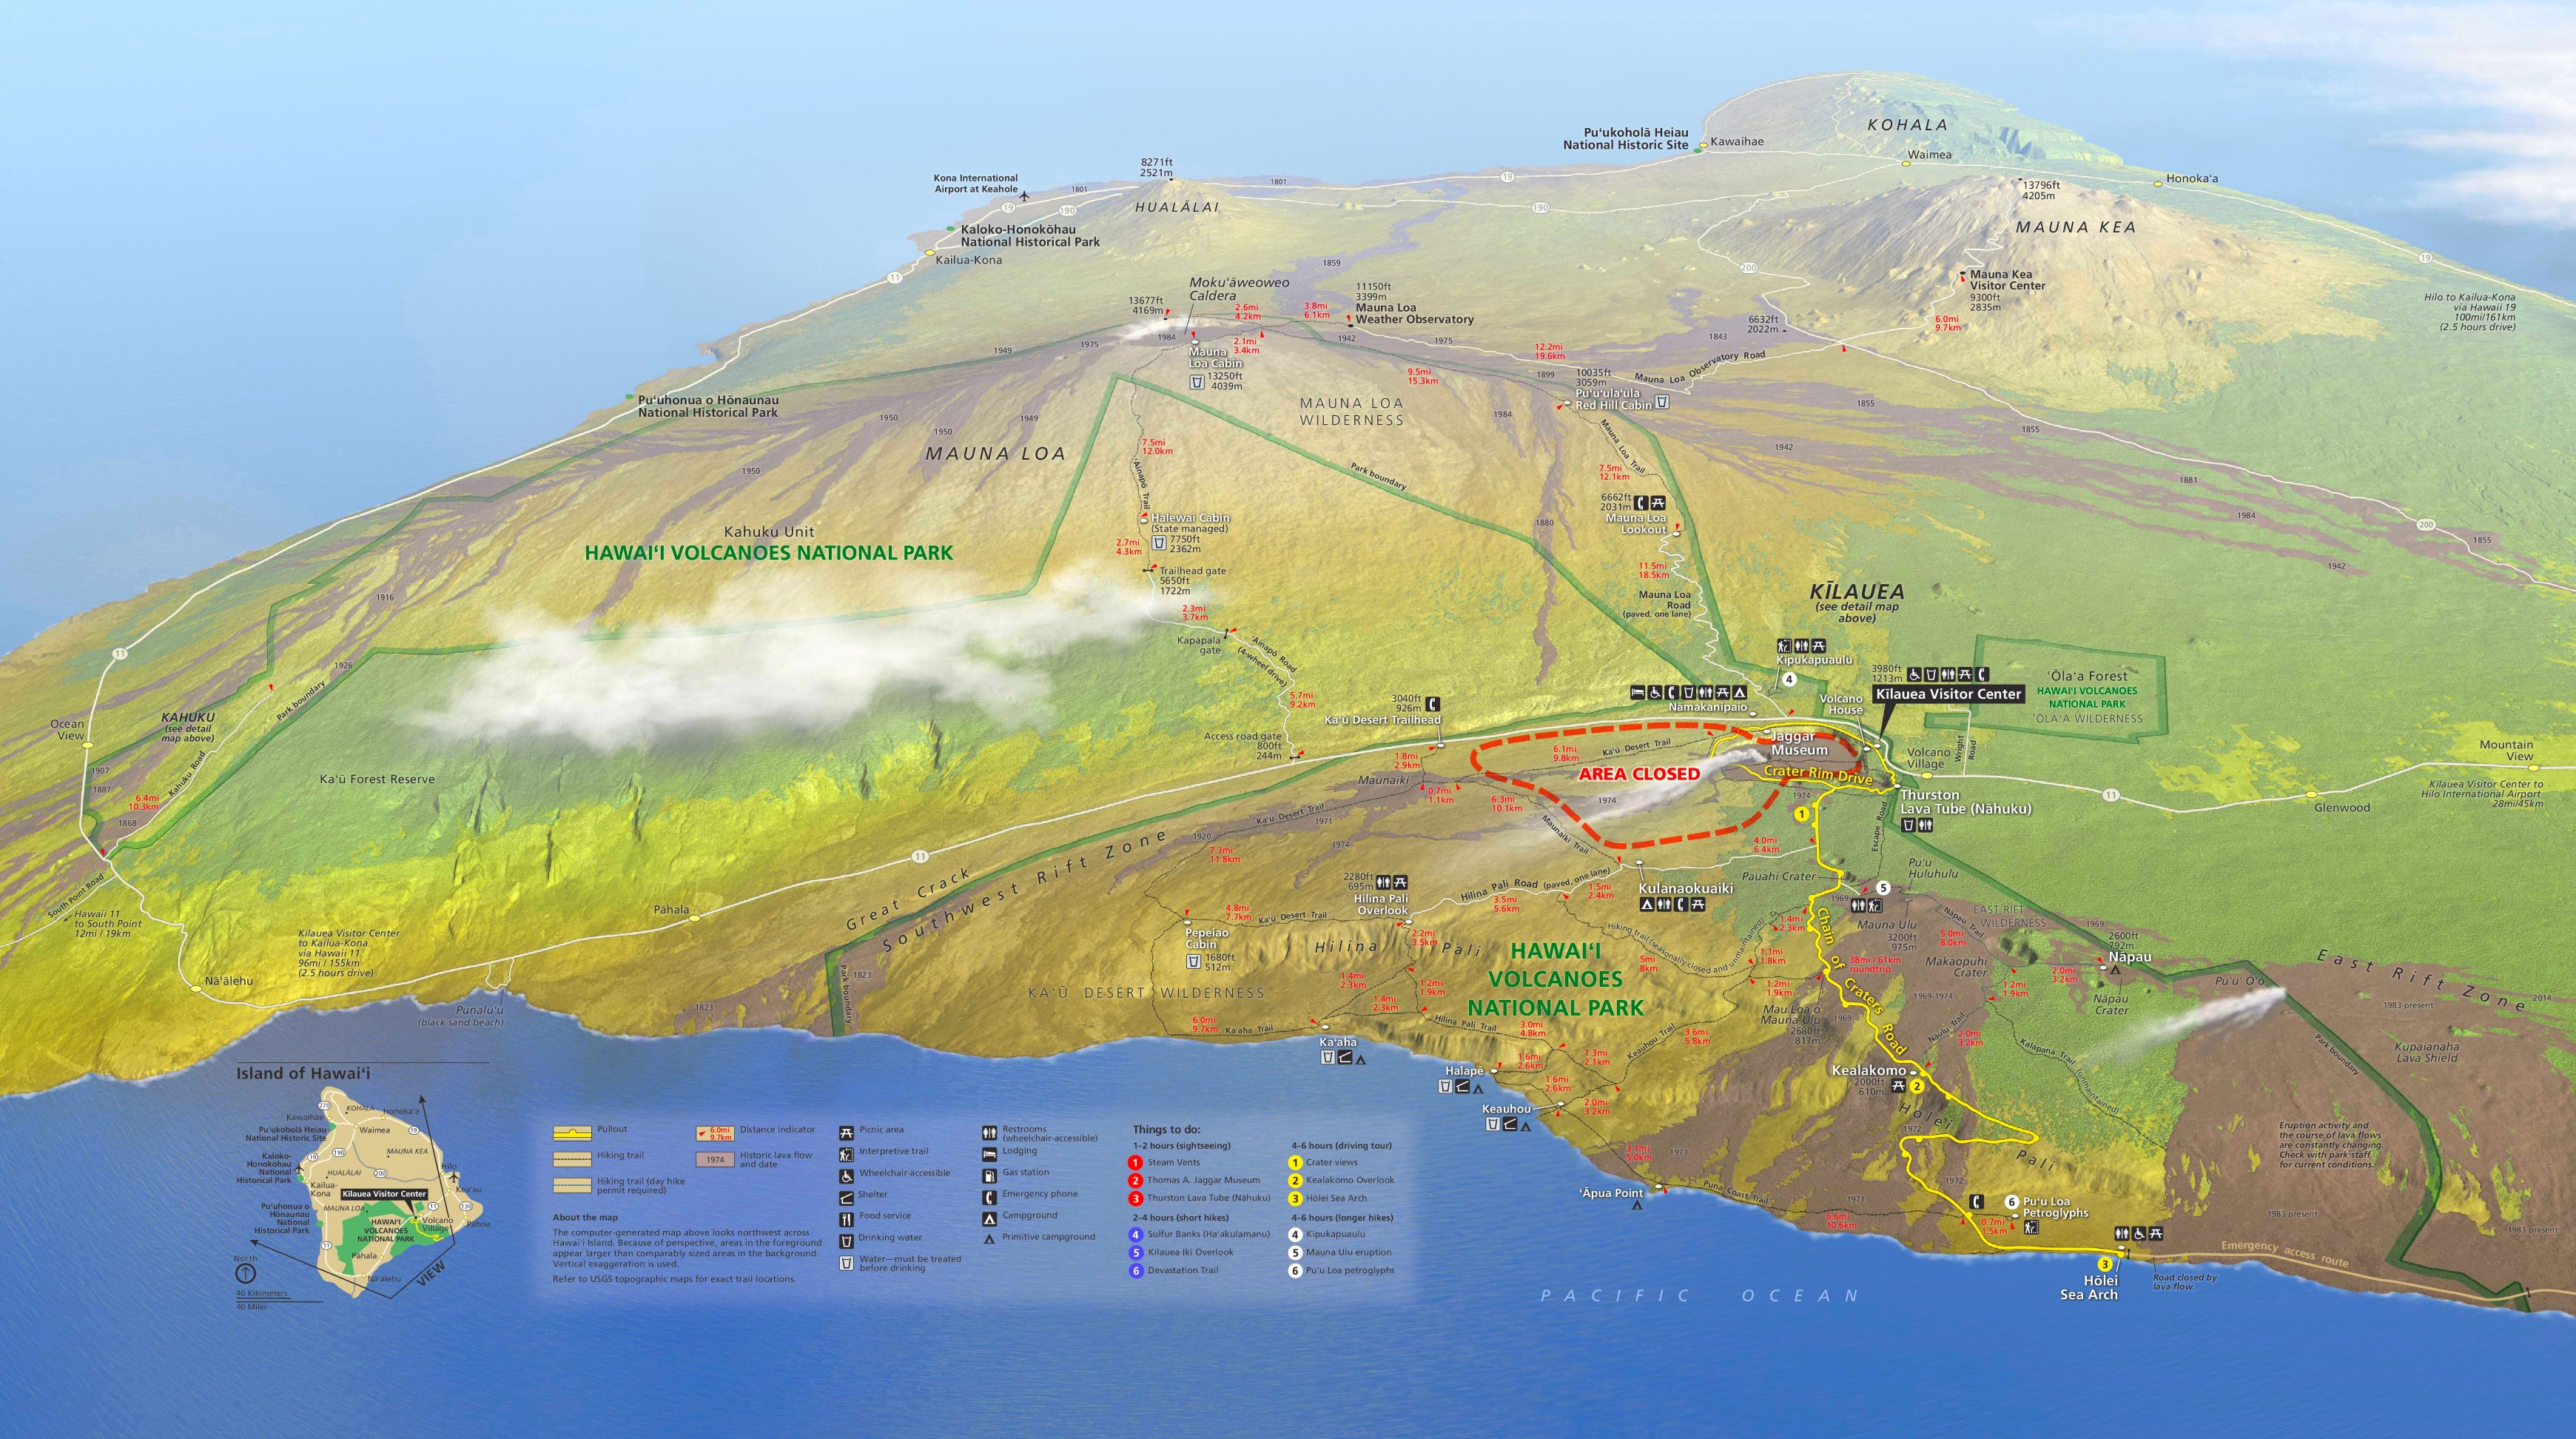 Hawaii Volcanoes tourist map